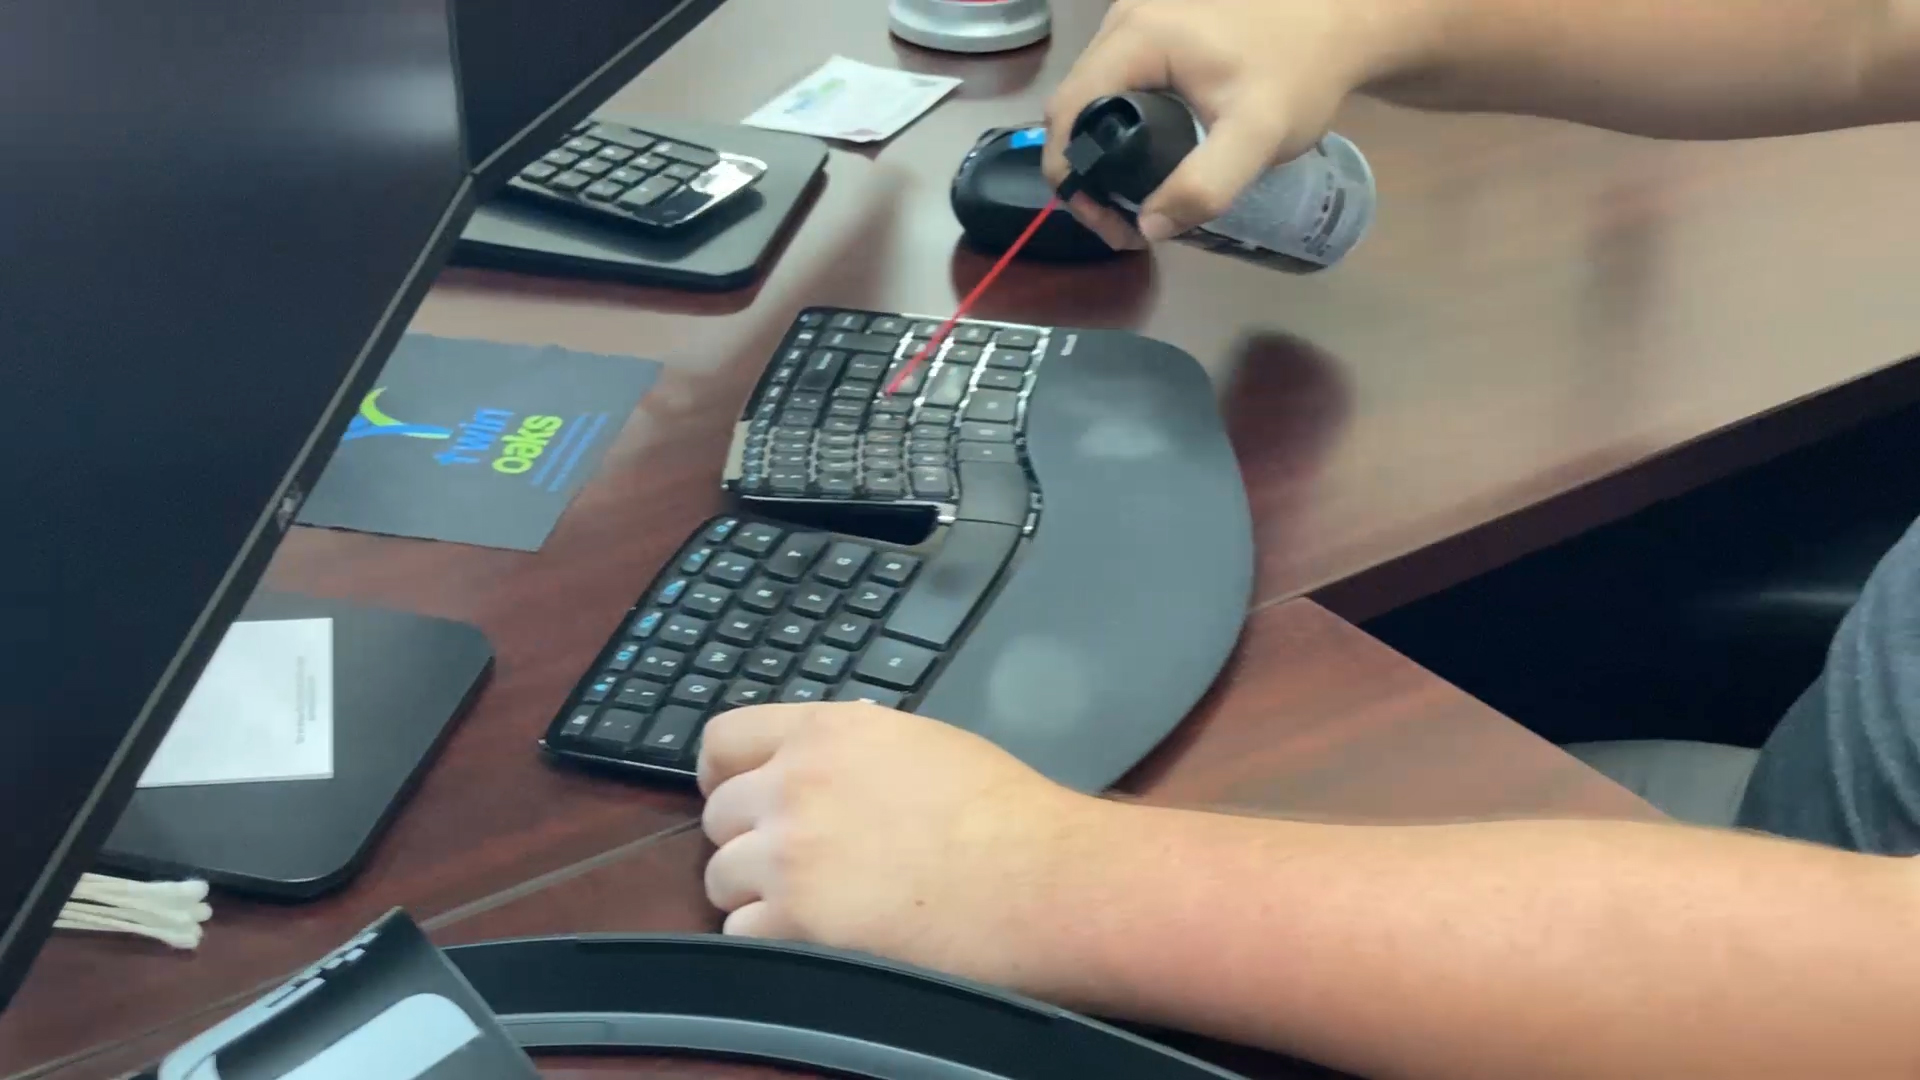 Clean keyboard, sanitize keyboard, disinfect keyboard, sanitize work areas